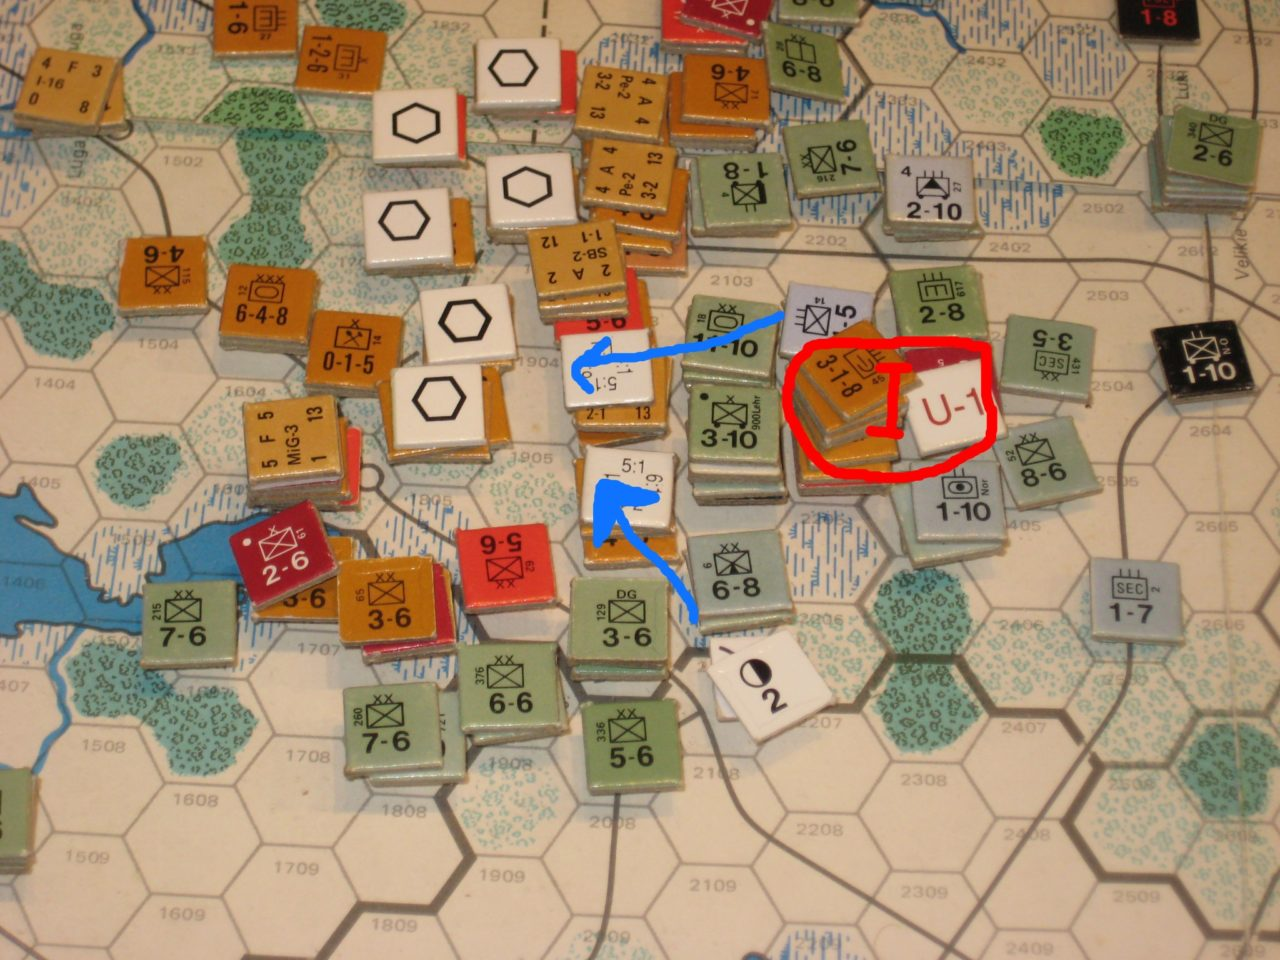 May II '42: The Axis advances south of Leningrad, pocketing isolated Soviet units